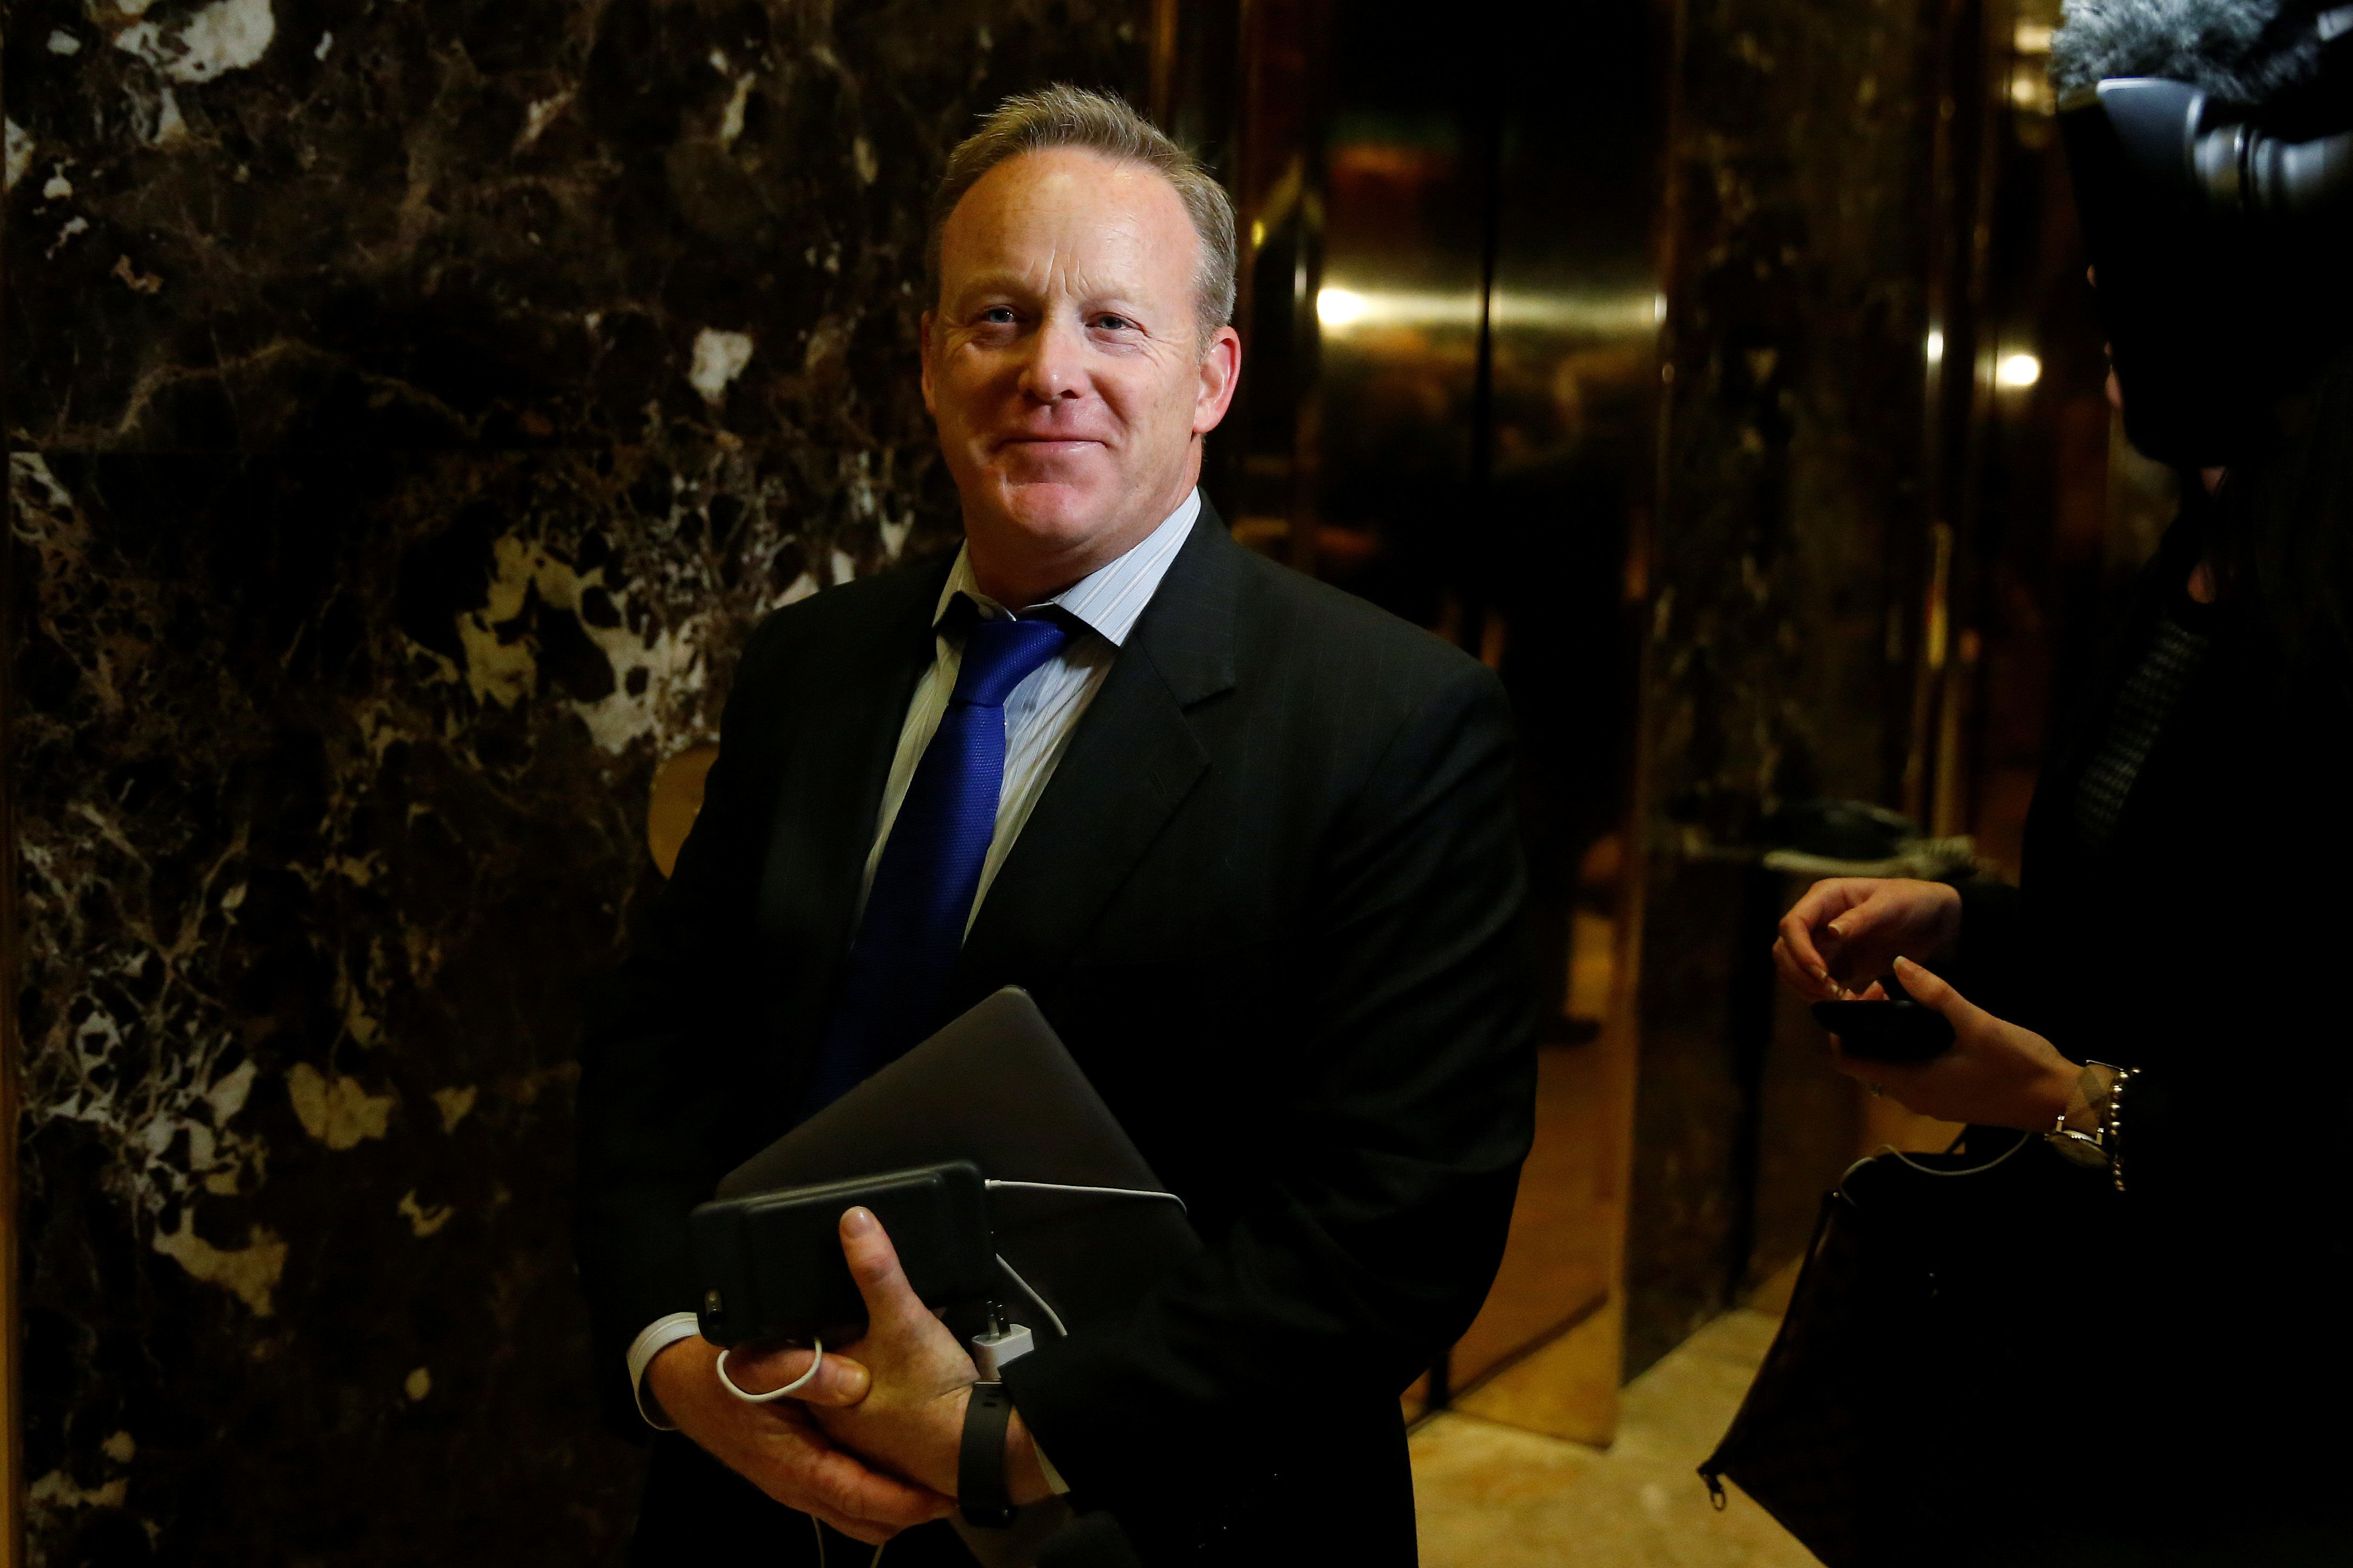 Sean Spicer has been named White House Press